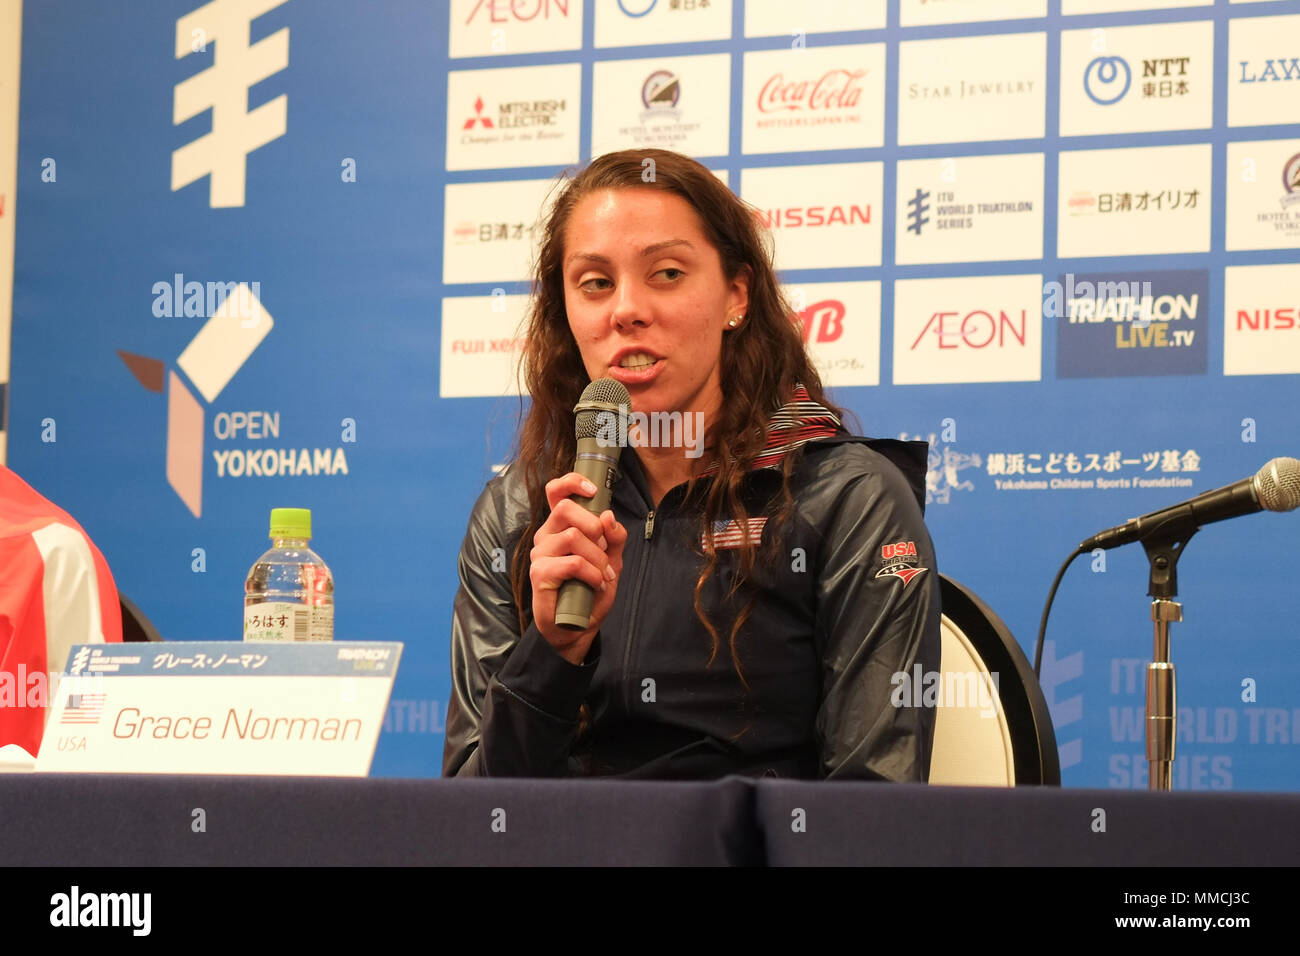 2018/05/10 Yokohama, Press Conference of the ITU World Triathlon Yokohama at the Monterey Hotel. Grace Norman USA (Photos by Michael Steinebach/AFLO) - Stock Image